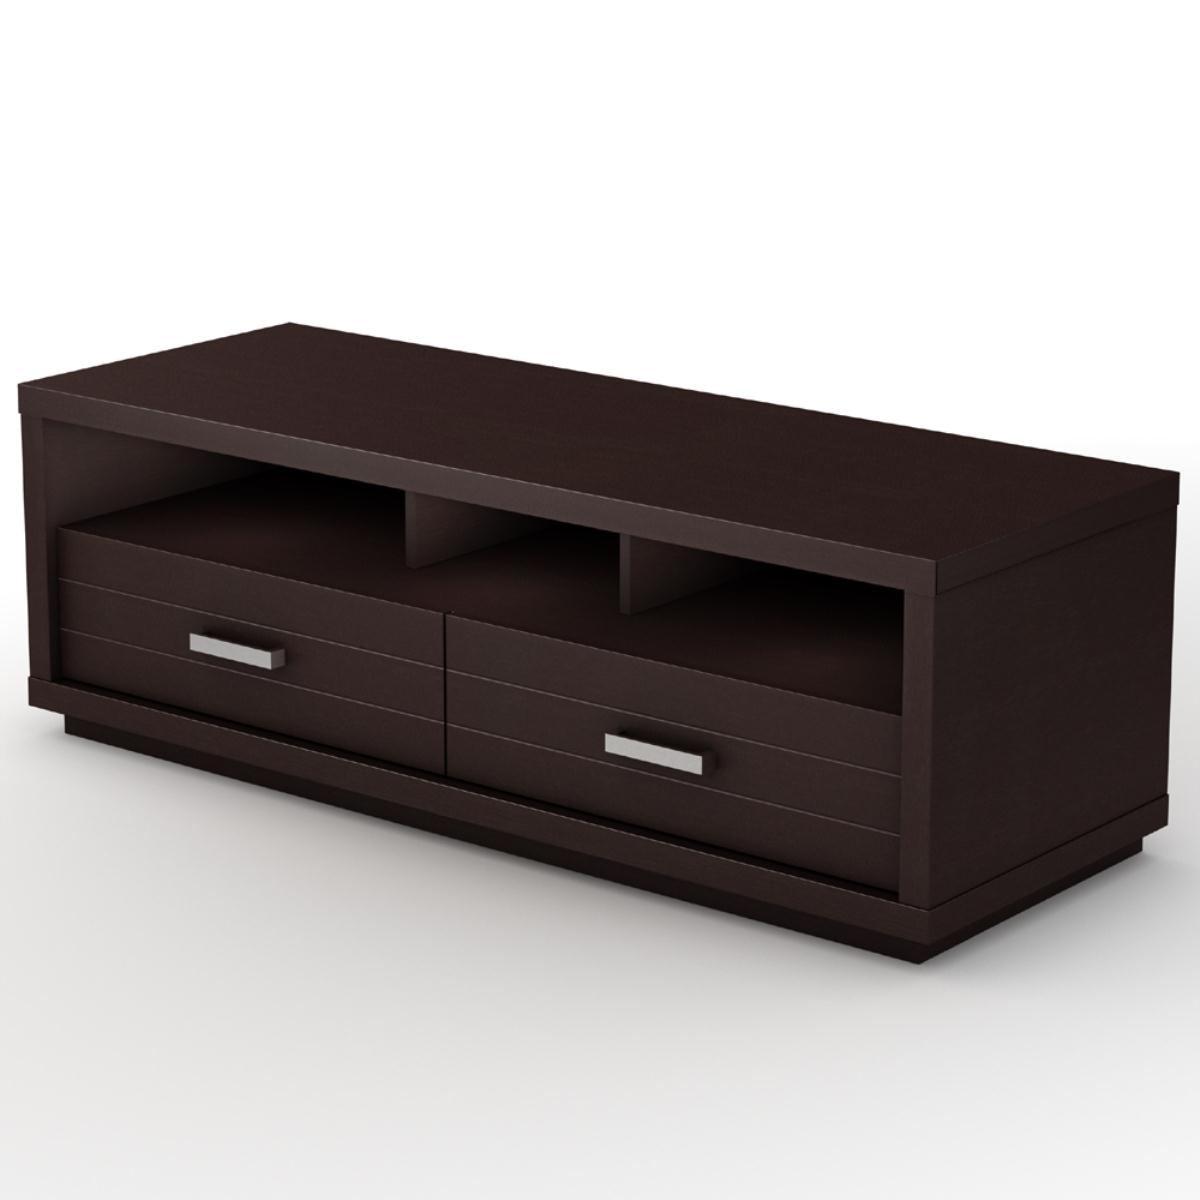 South Shore Skyline TV Stand - Chocolate 4359663